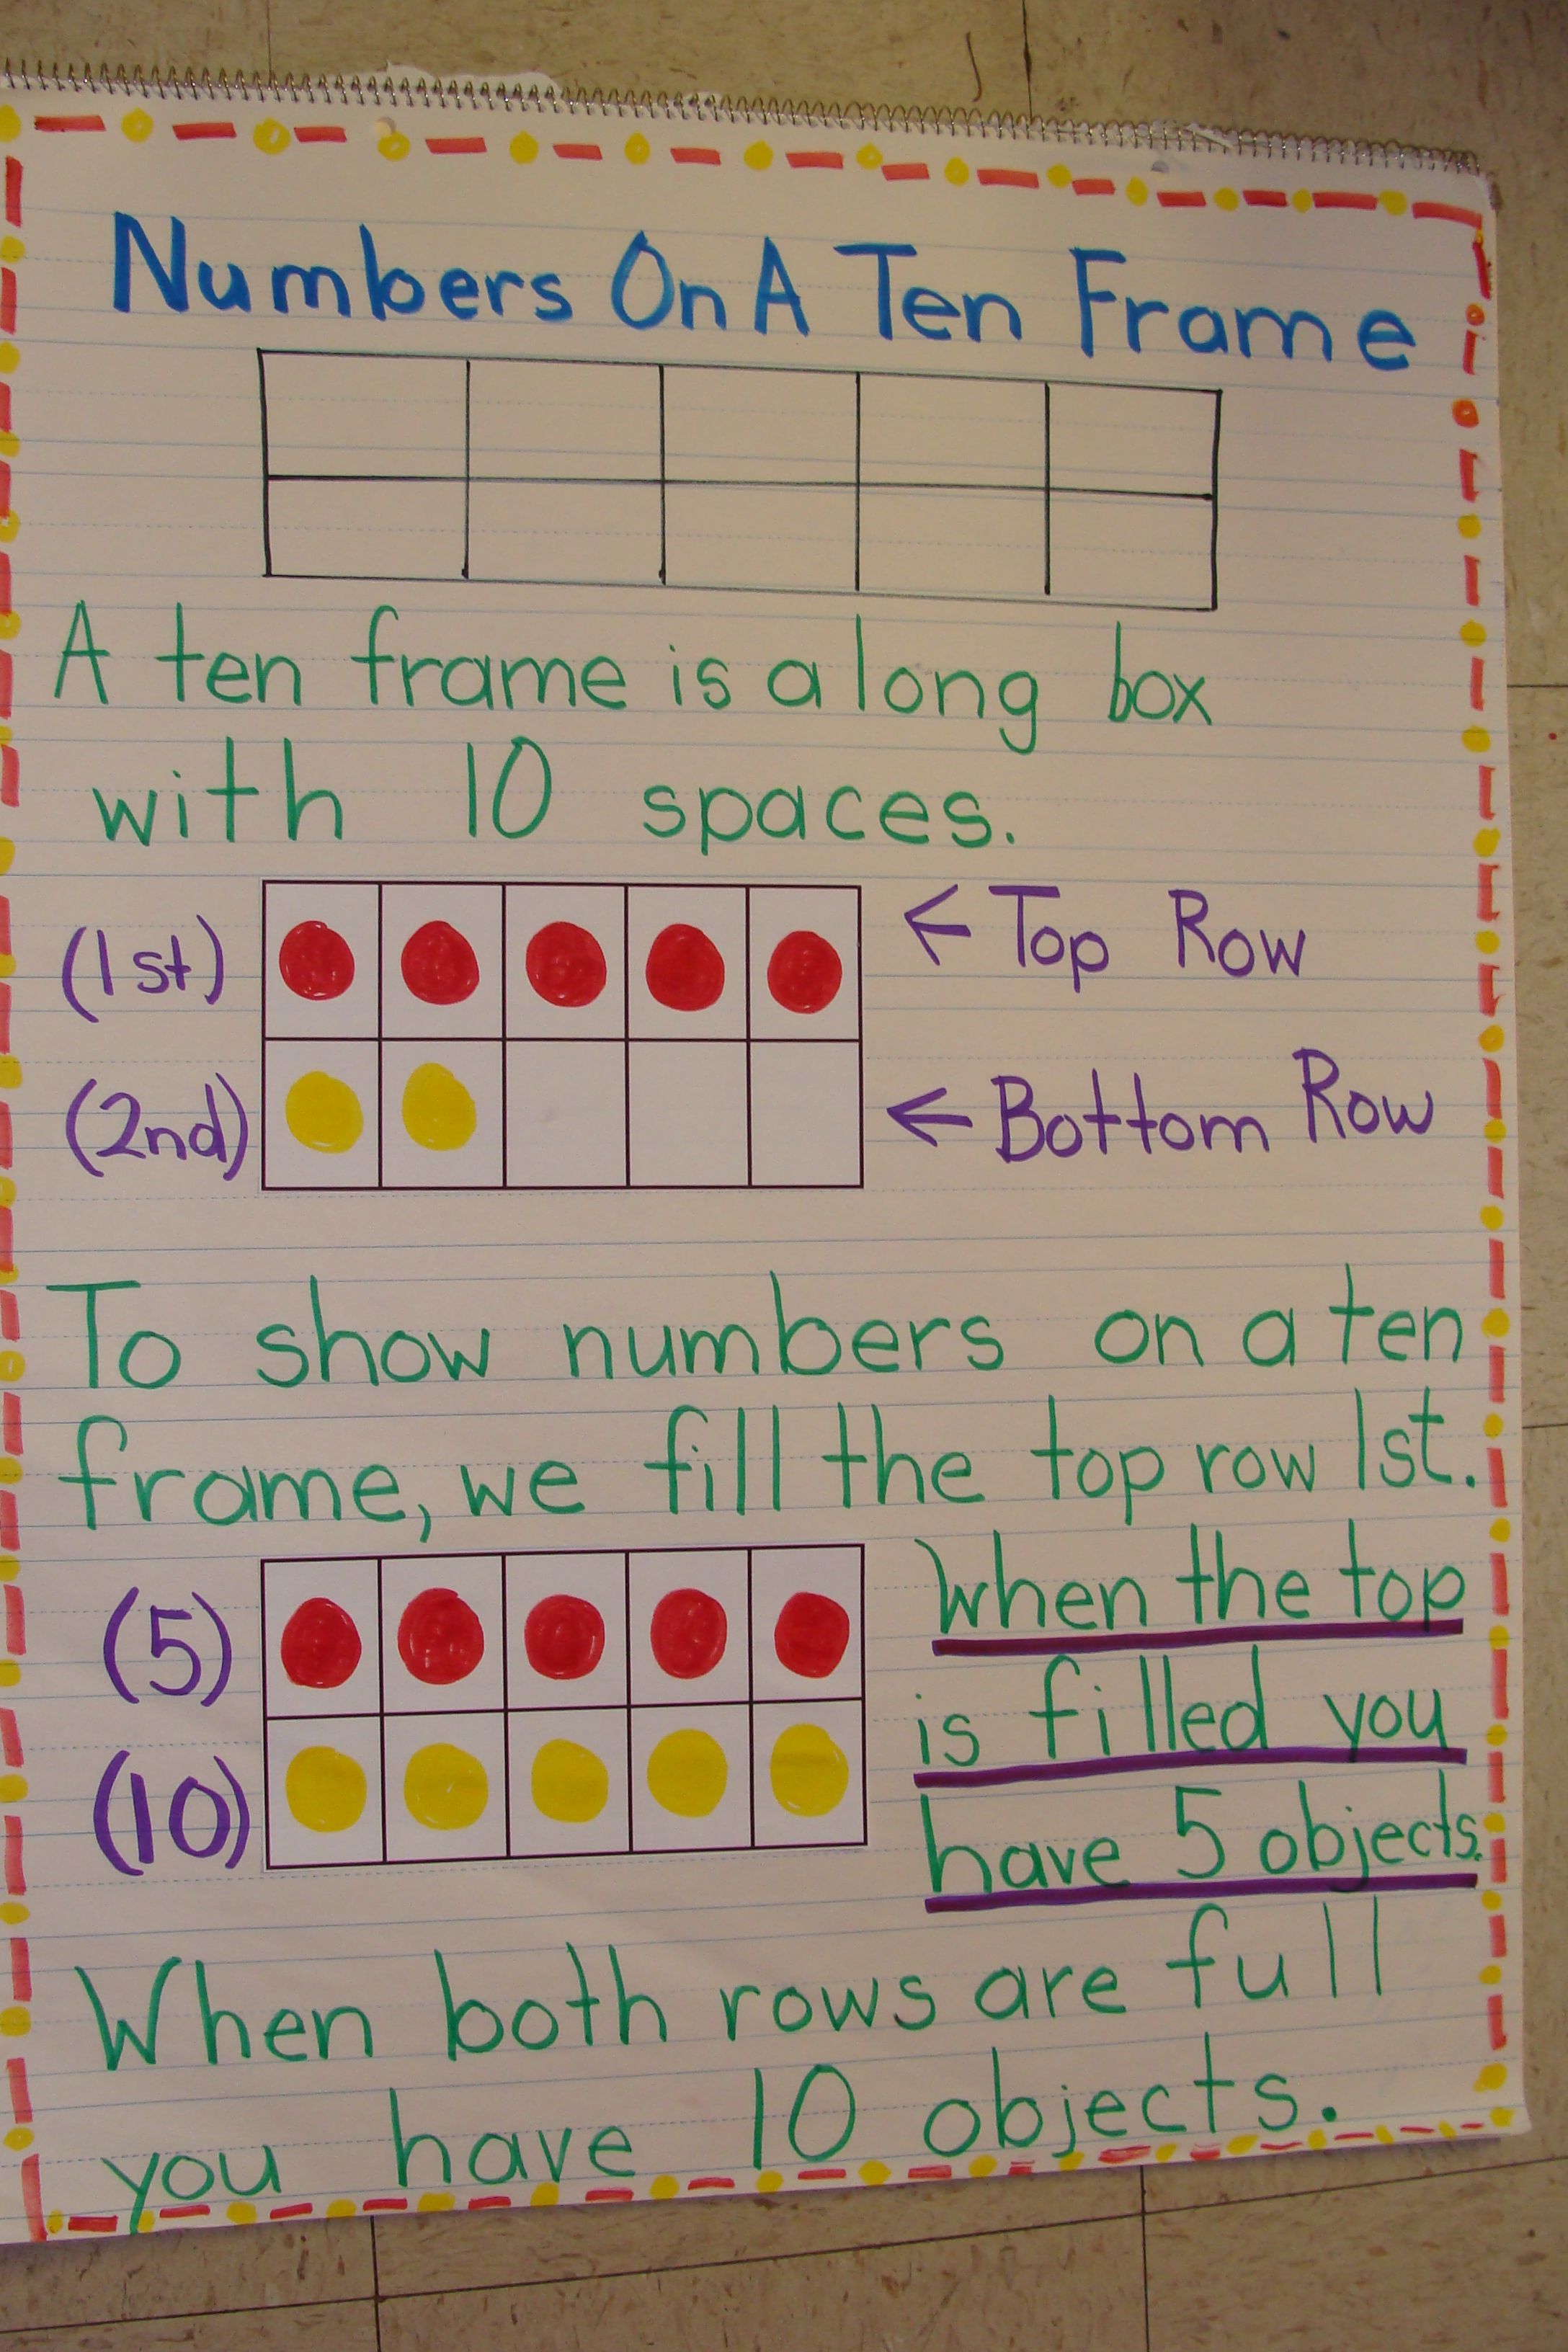 1000+ images about Friends of 10 Ten on Pinterest : Ten frames, Making 10 and Math